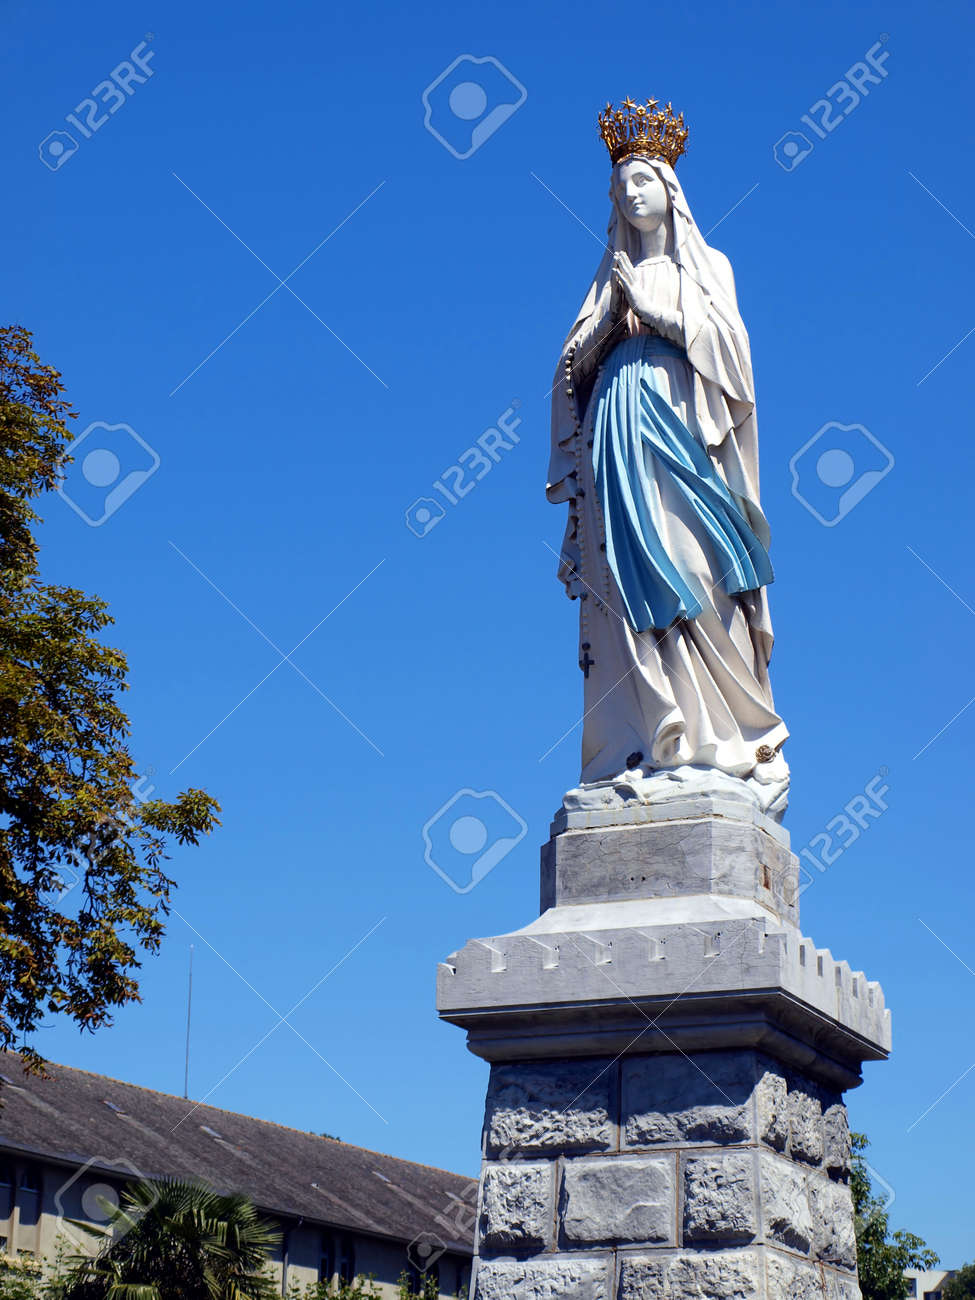 statue of the Virgin Mary in Lourdes, France - 11297060